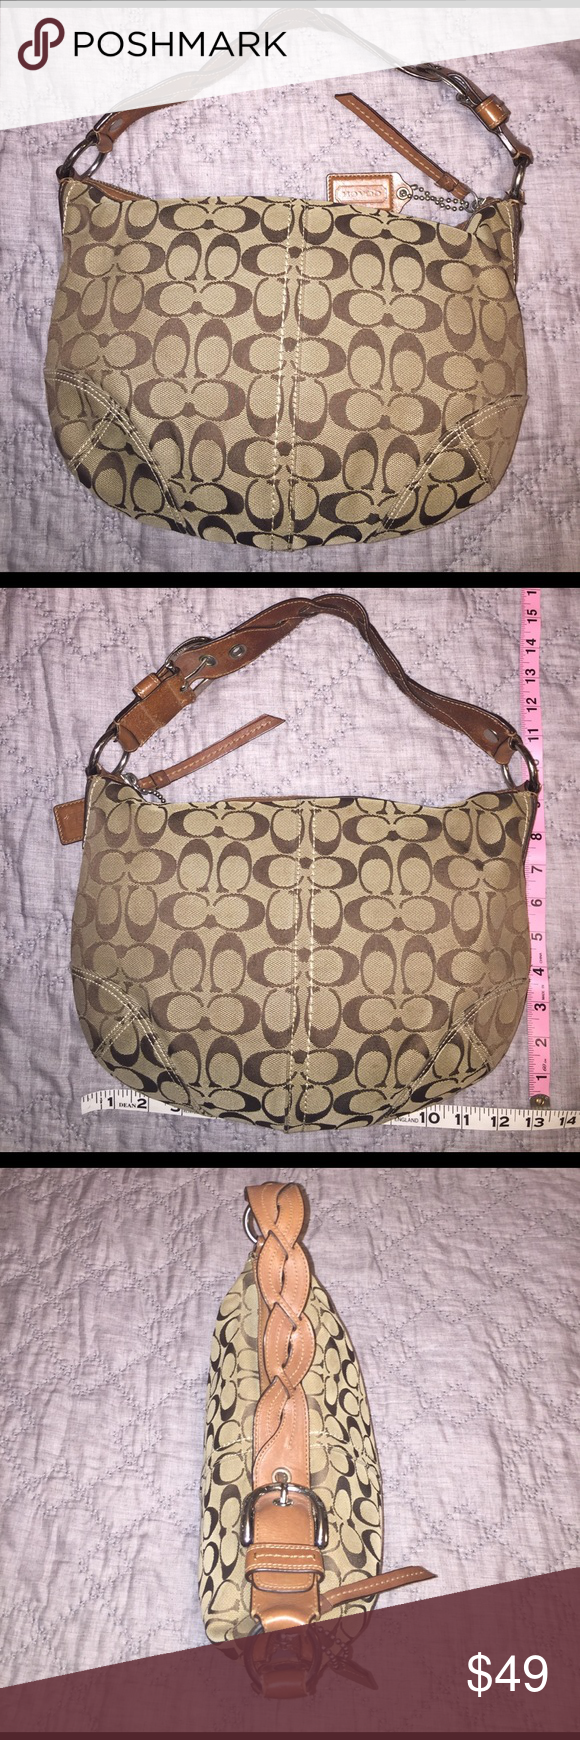 Signature Coach Purse With Braided Leather Handle Braided Leather Leather Handle Coach Purses